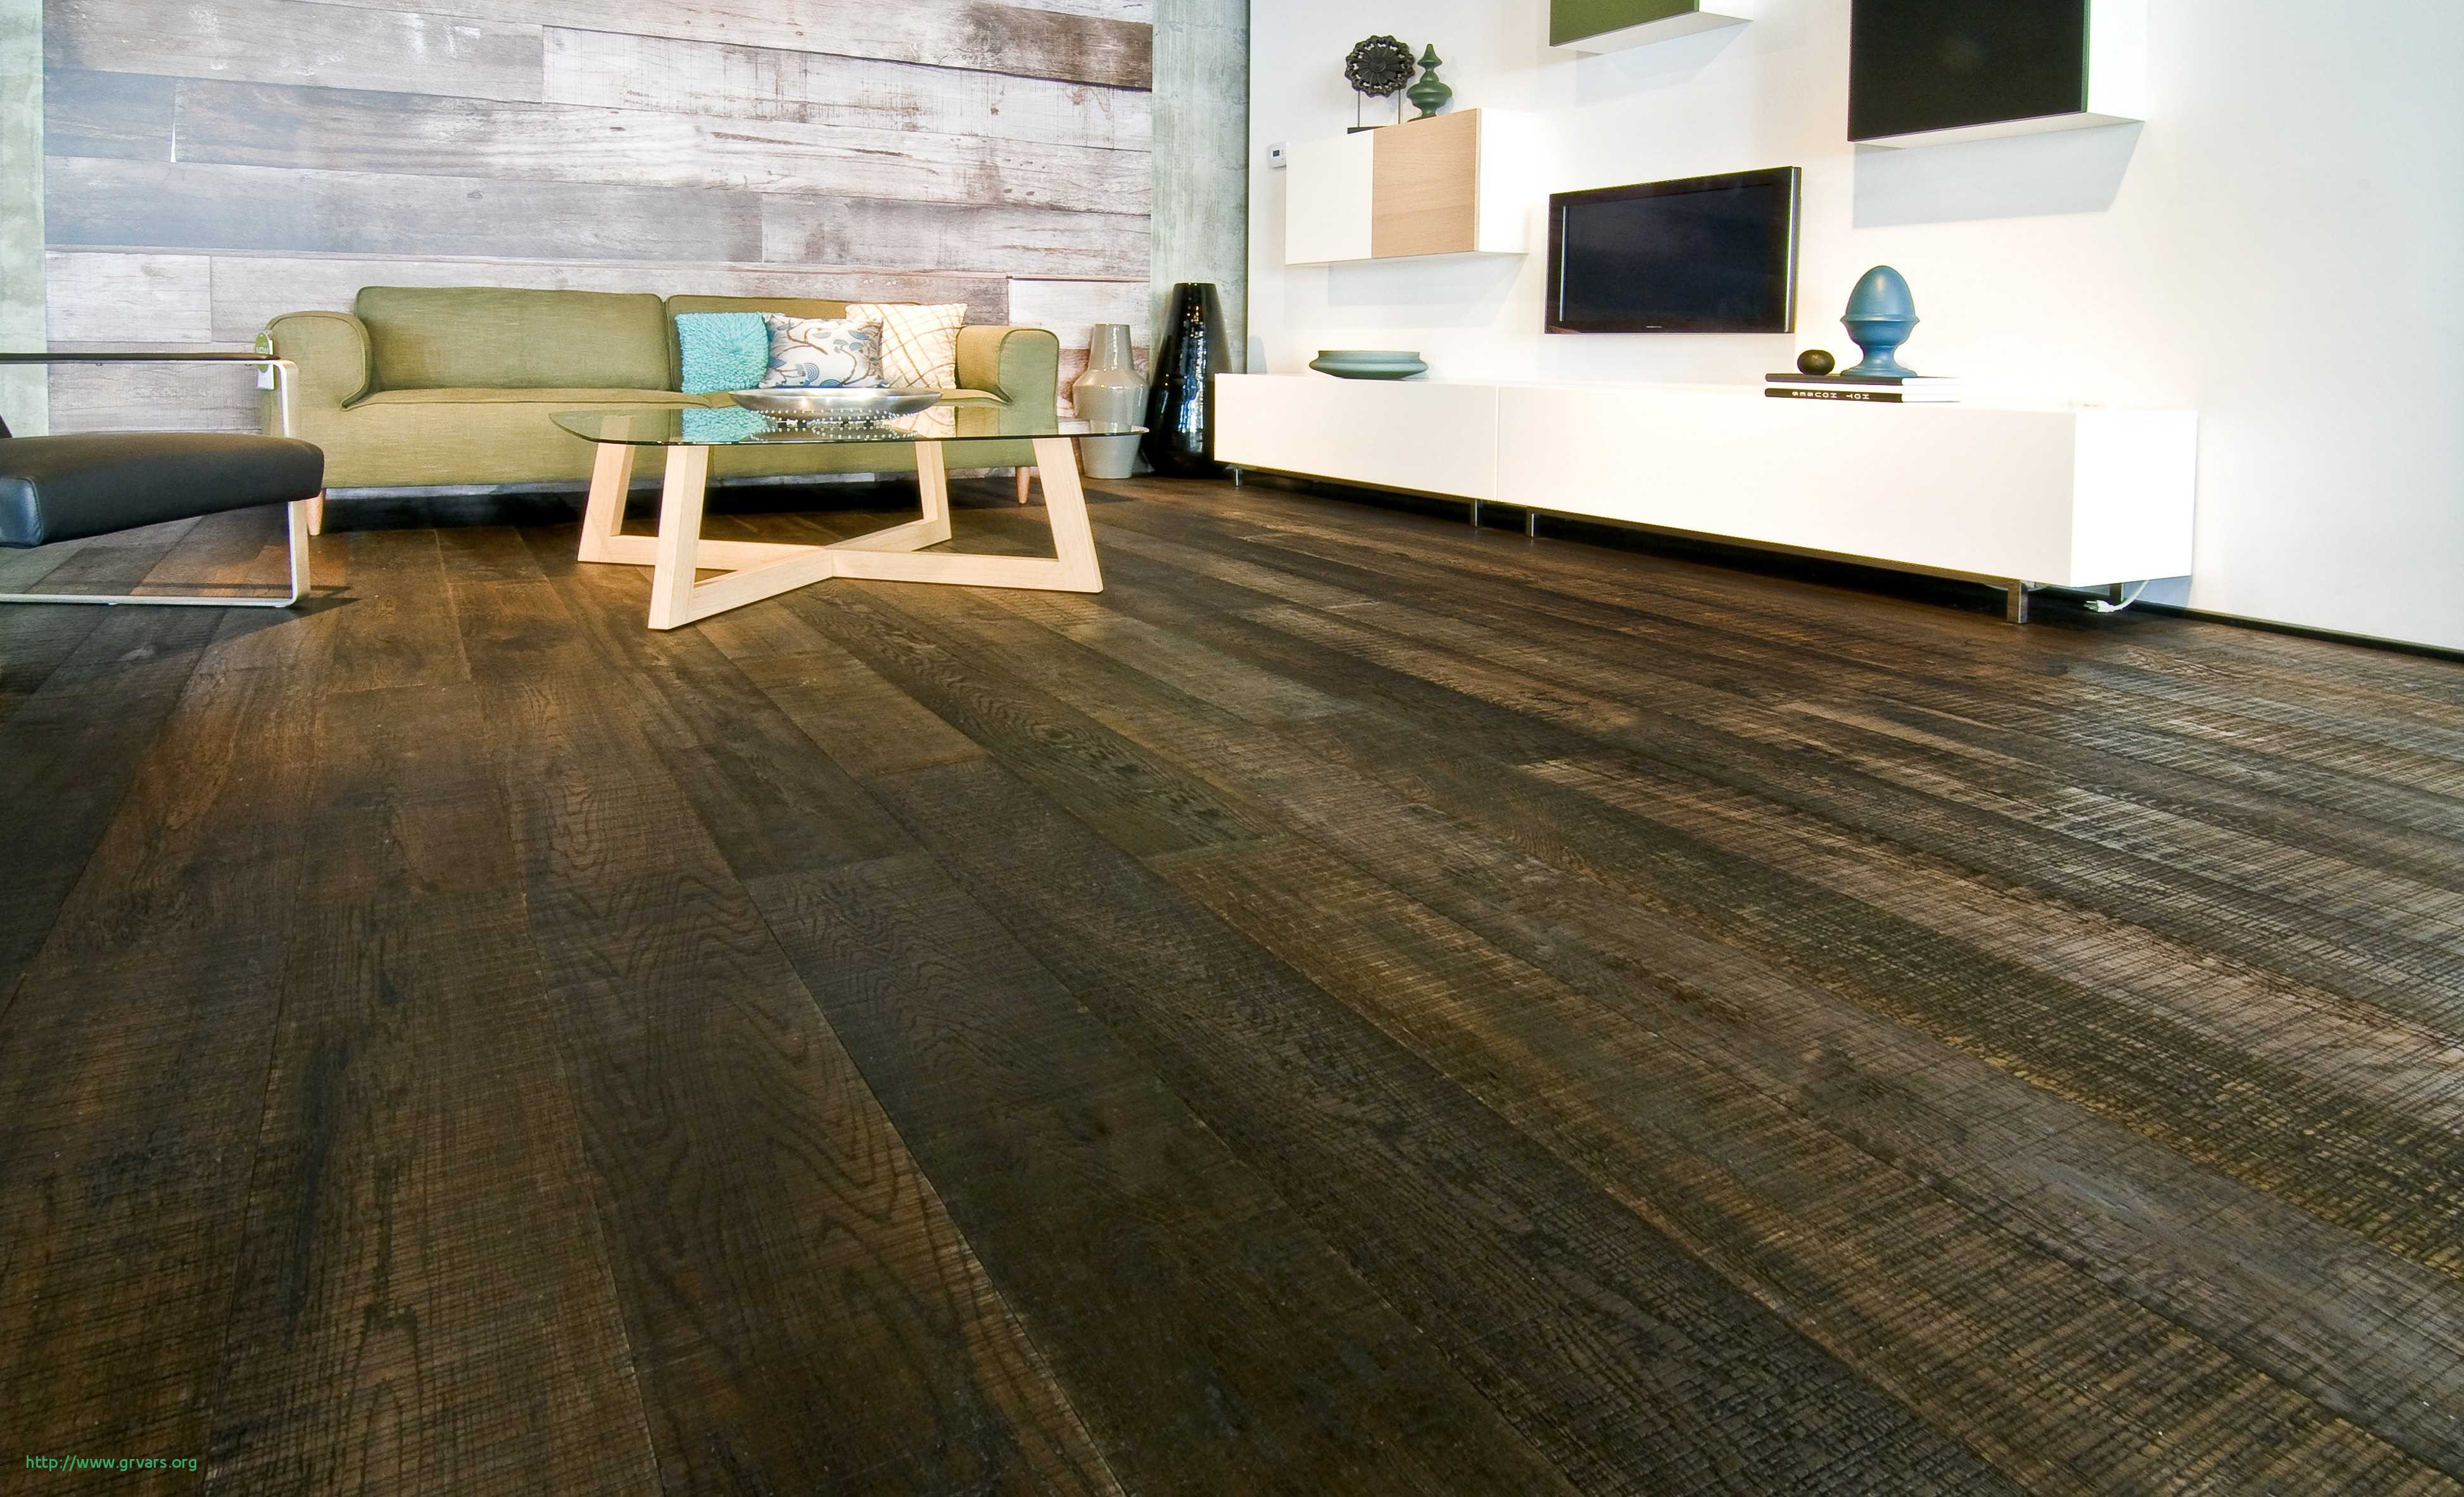 bruce hardwood floors cost per square foot of 21 beau cheapest hardwood flooring in toronto ideas blog with cheapest hardwood flooring in toronto charmant engaging discount hardwood flooring 5 where to buy inspirational 0d